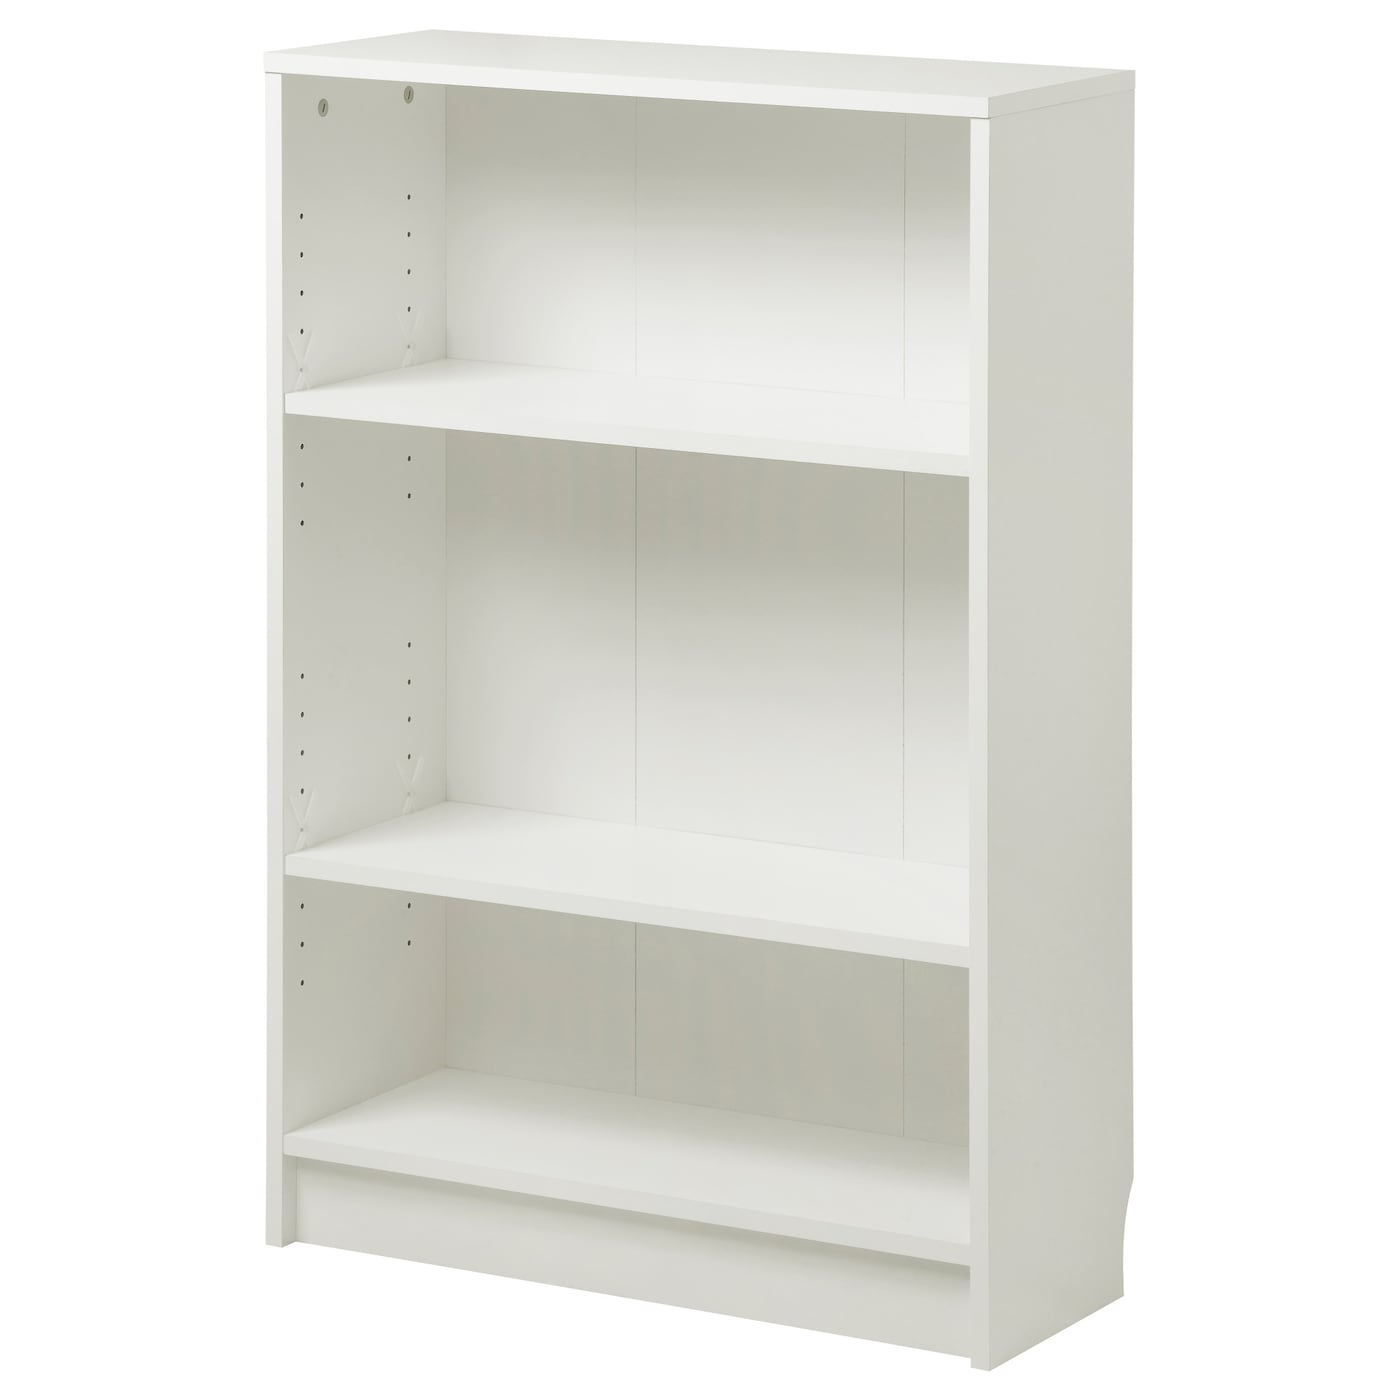 showing accent ikea photos of outstanding view bookcases bookshelf attachment white storages with small furniture gallery